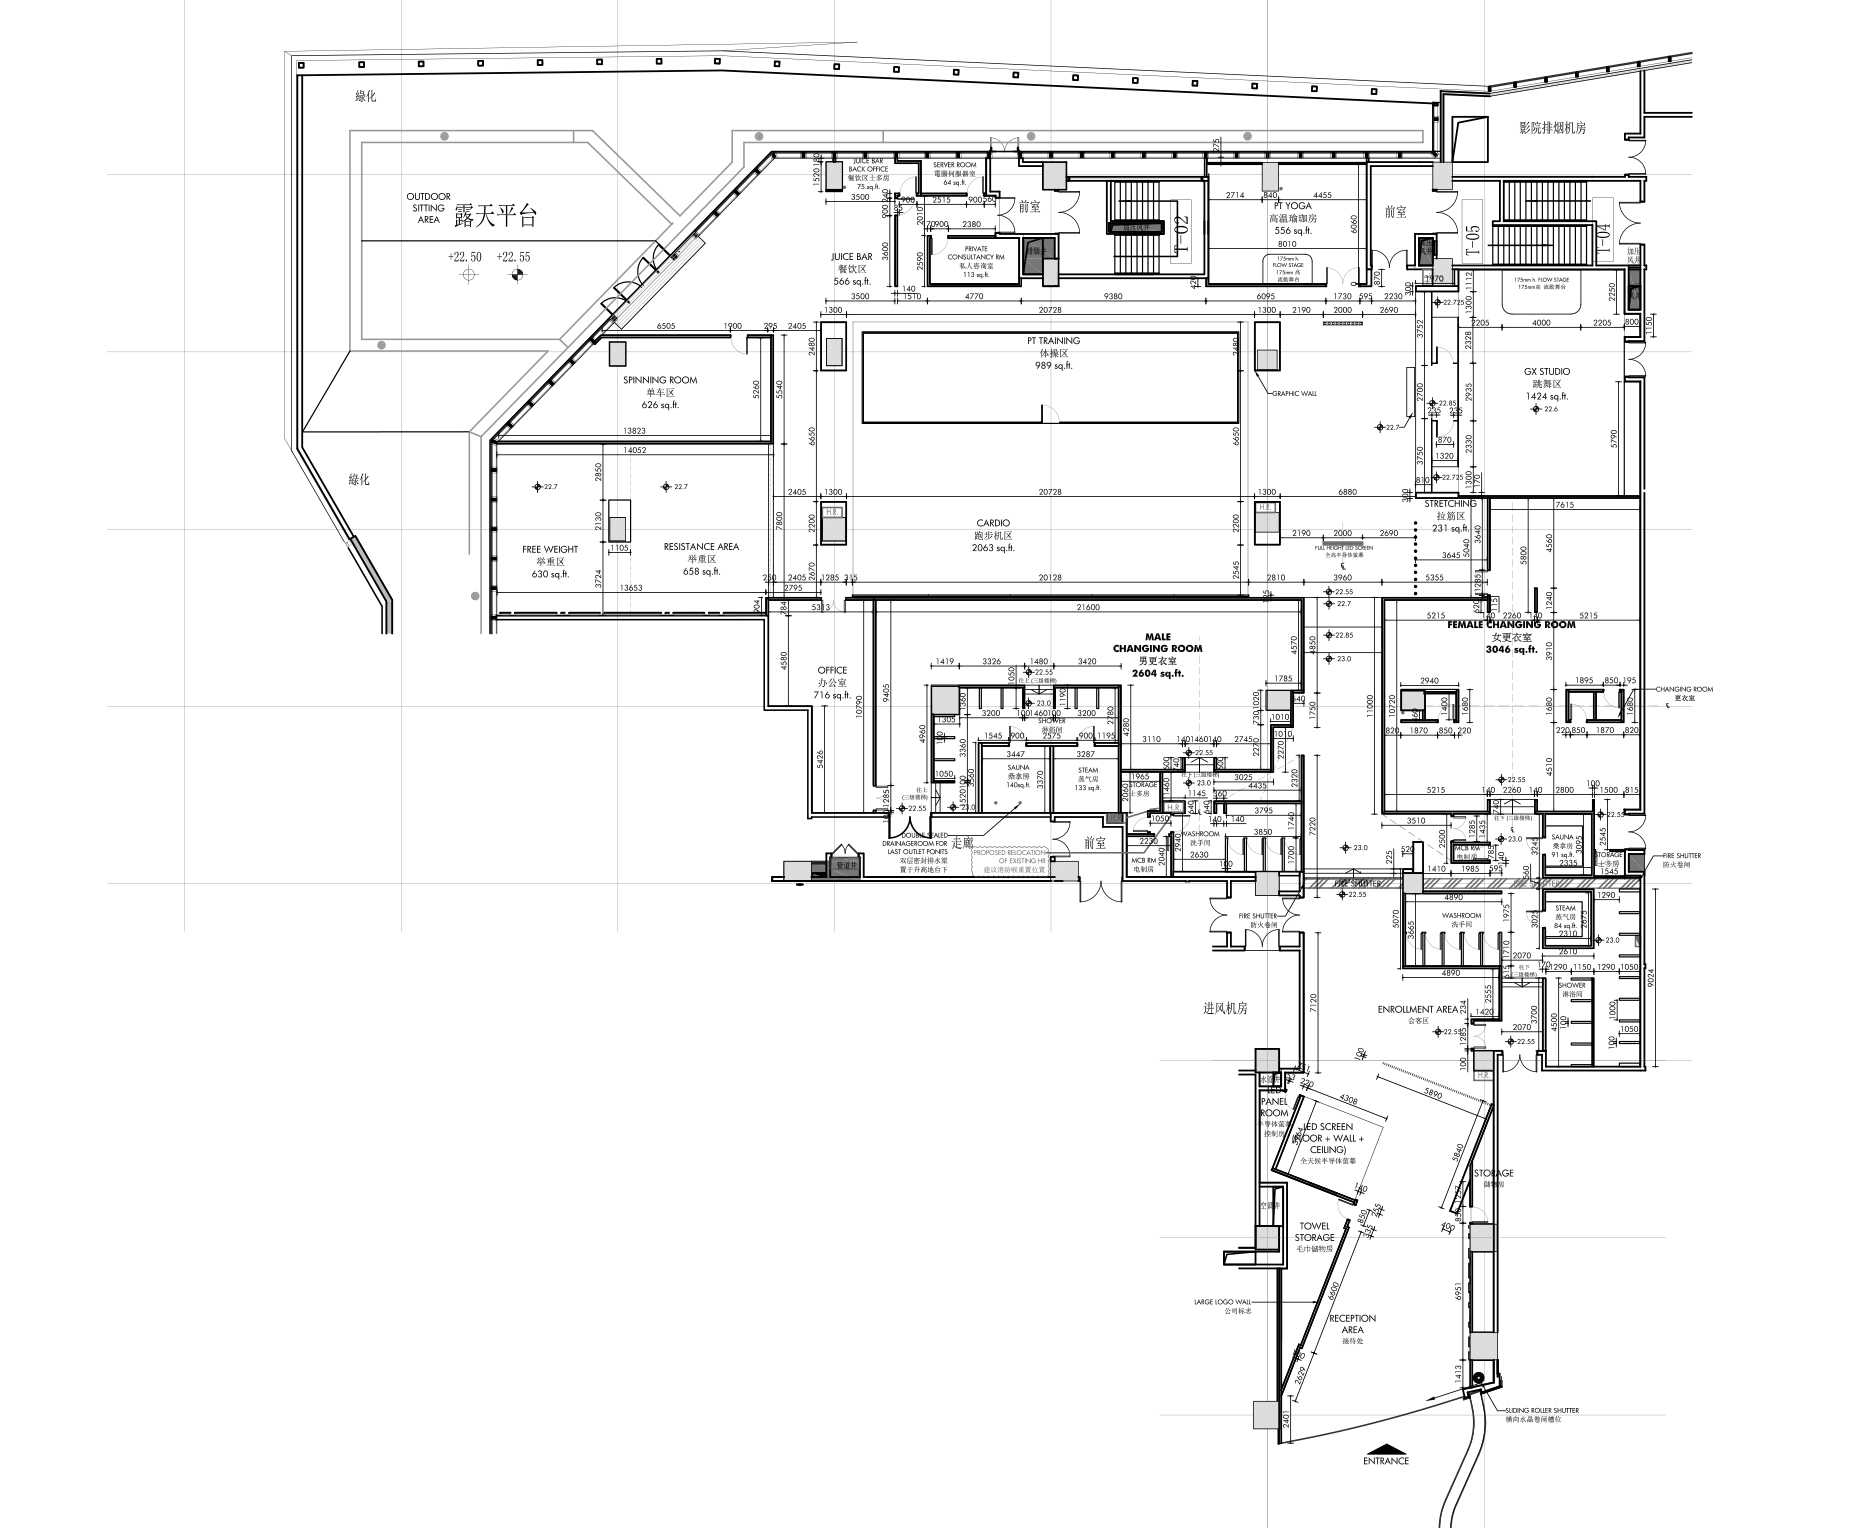 01_Layout Plan_20160530-4.jpg